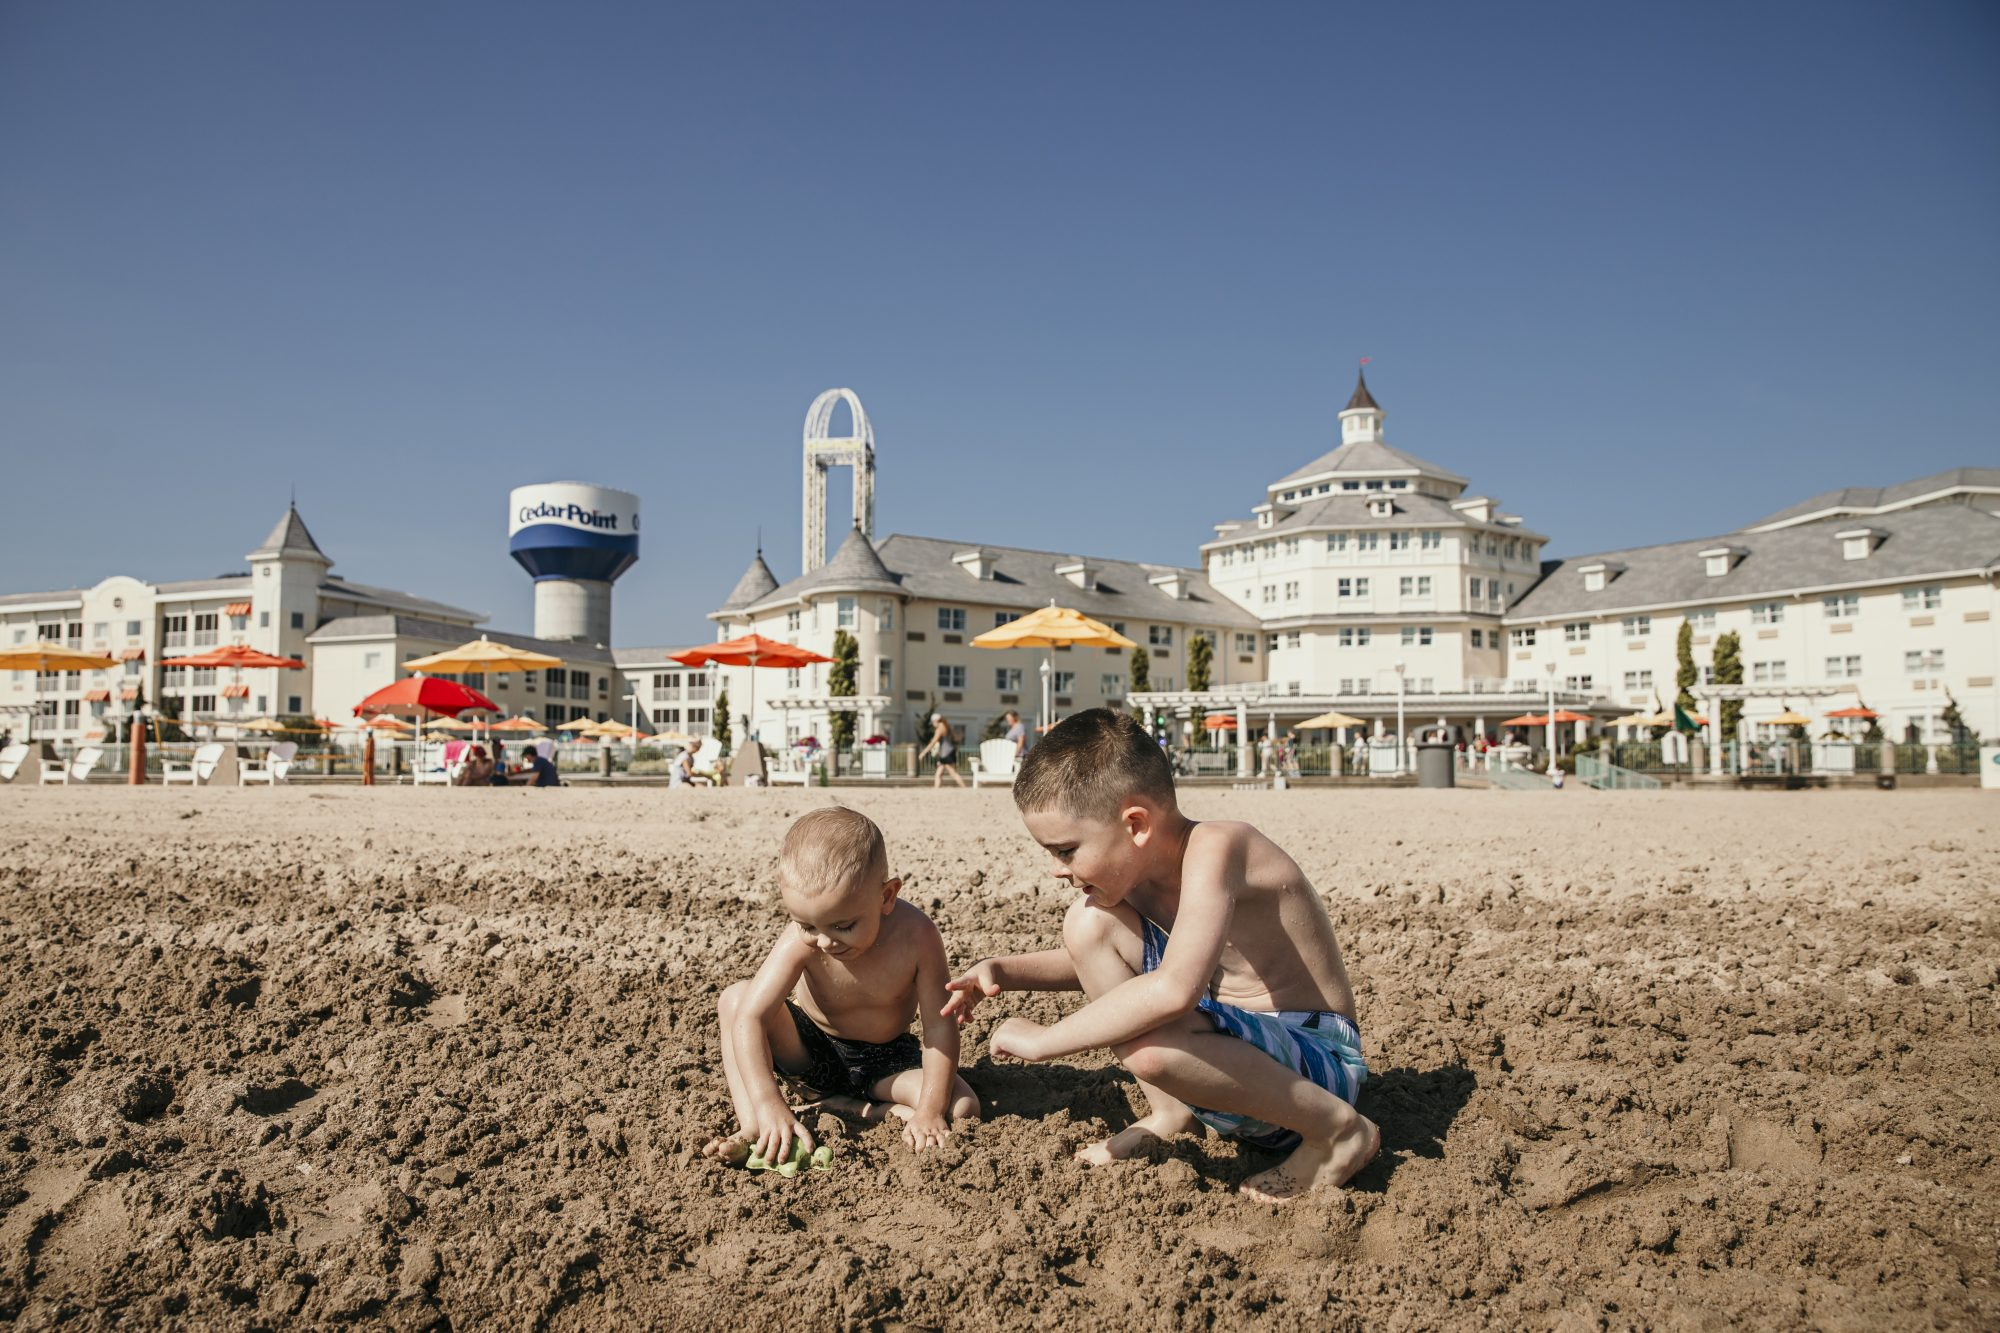 playing in the sand at hotel breakers in cedar point